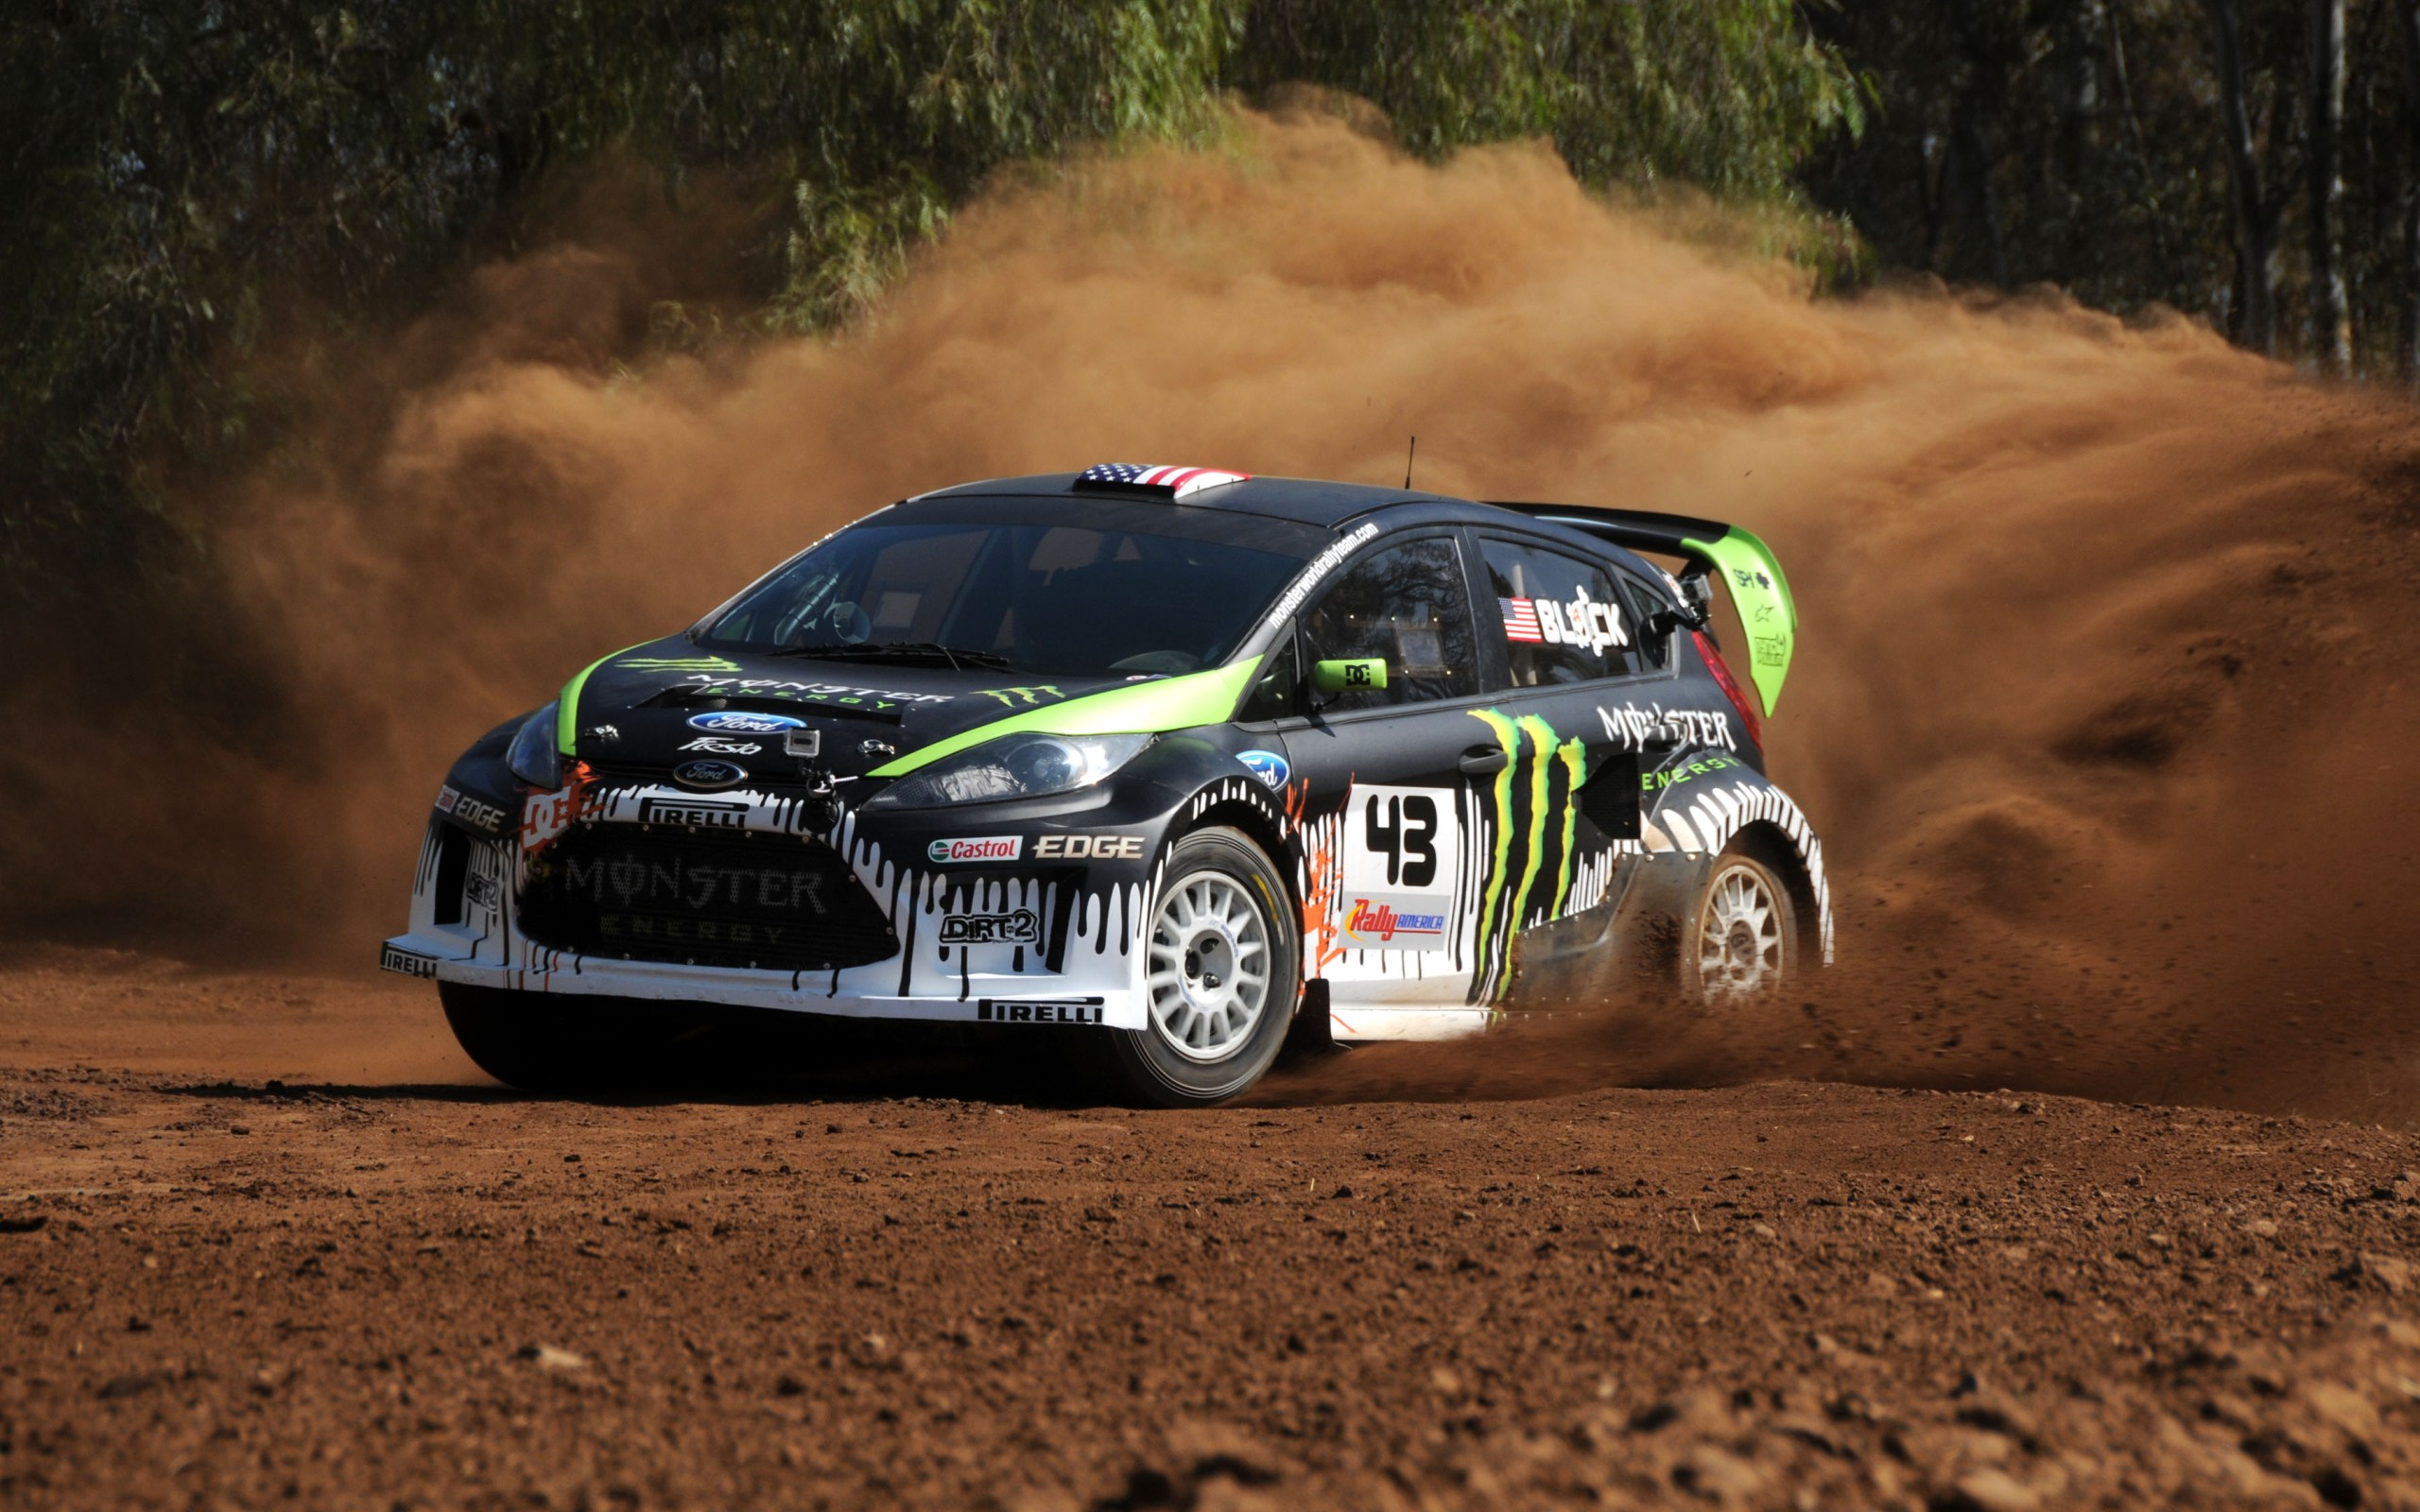 """Download the following Rally Car Wallpaper HD 2500 by clicking the button positioned underneath the """"Download Wallpaper"""" section."""